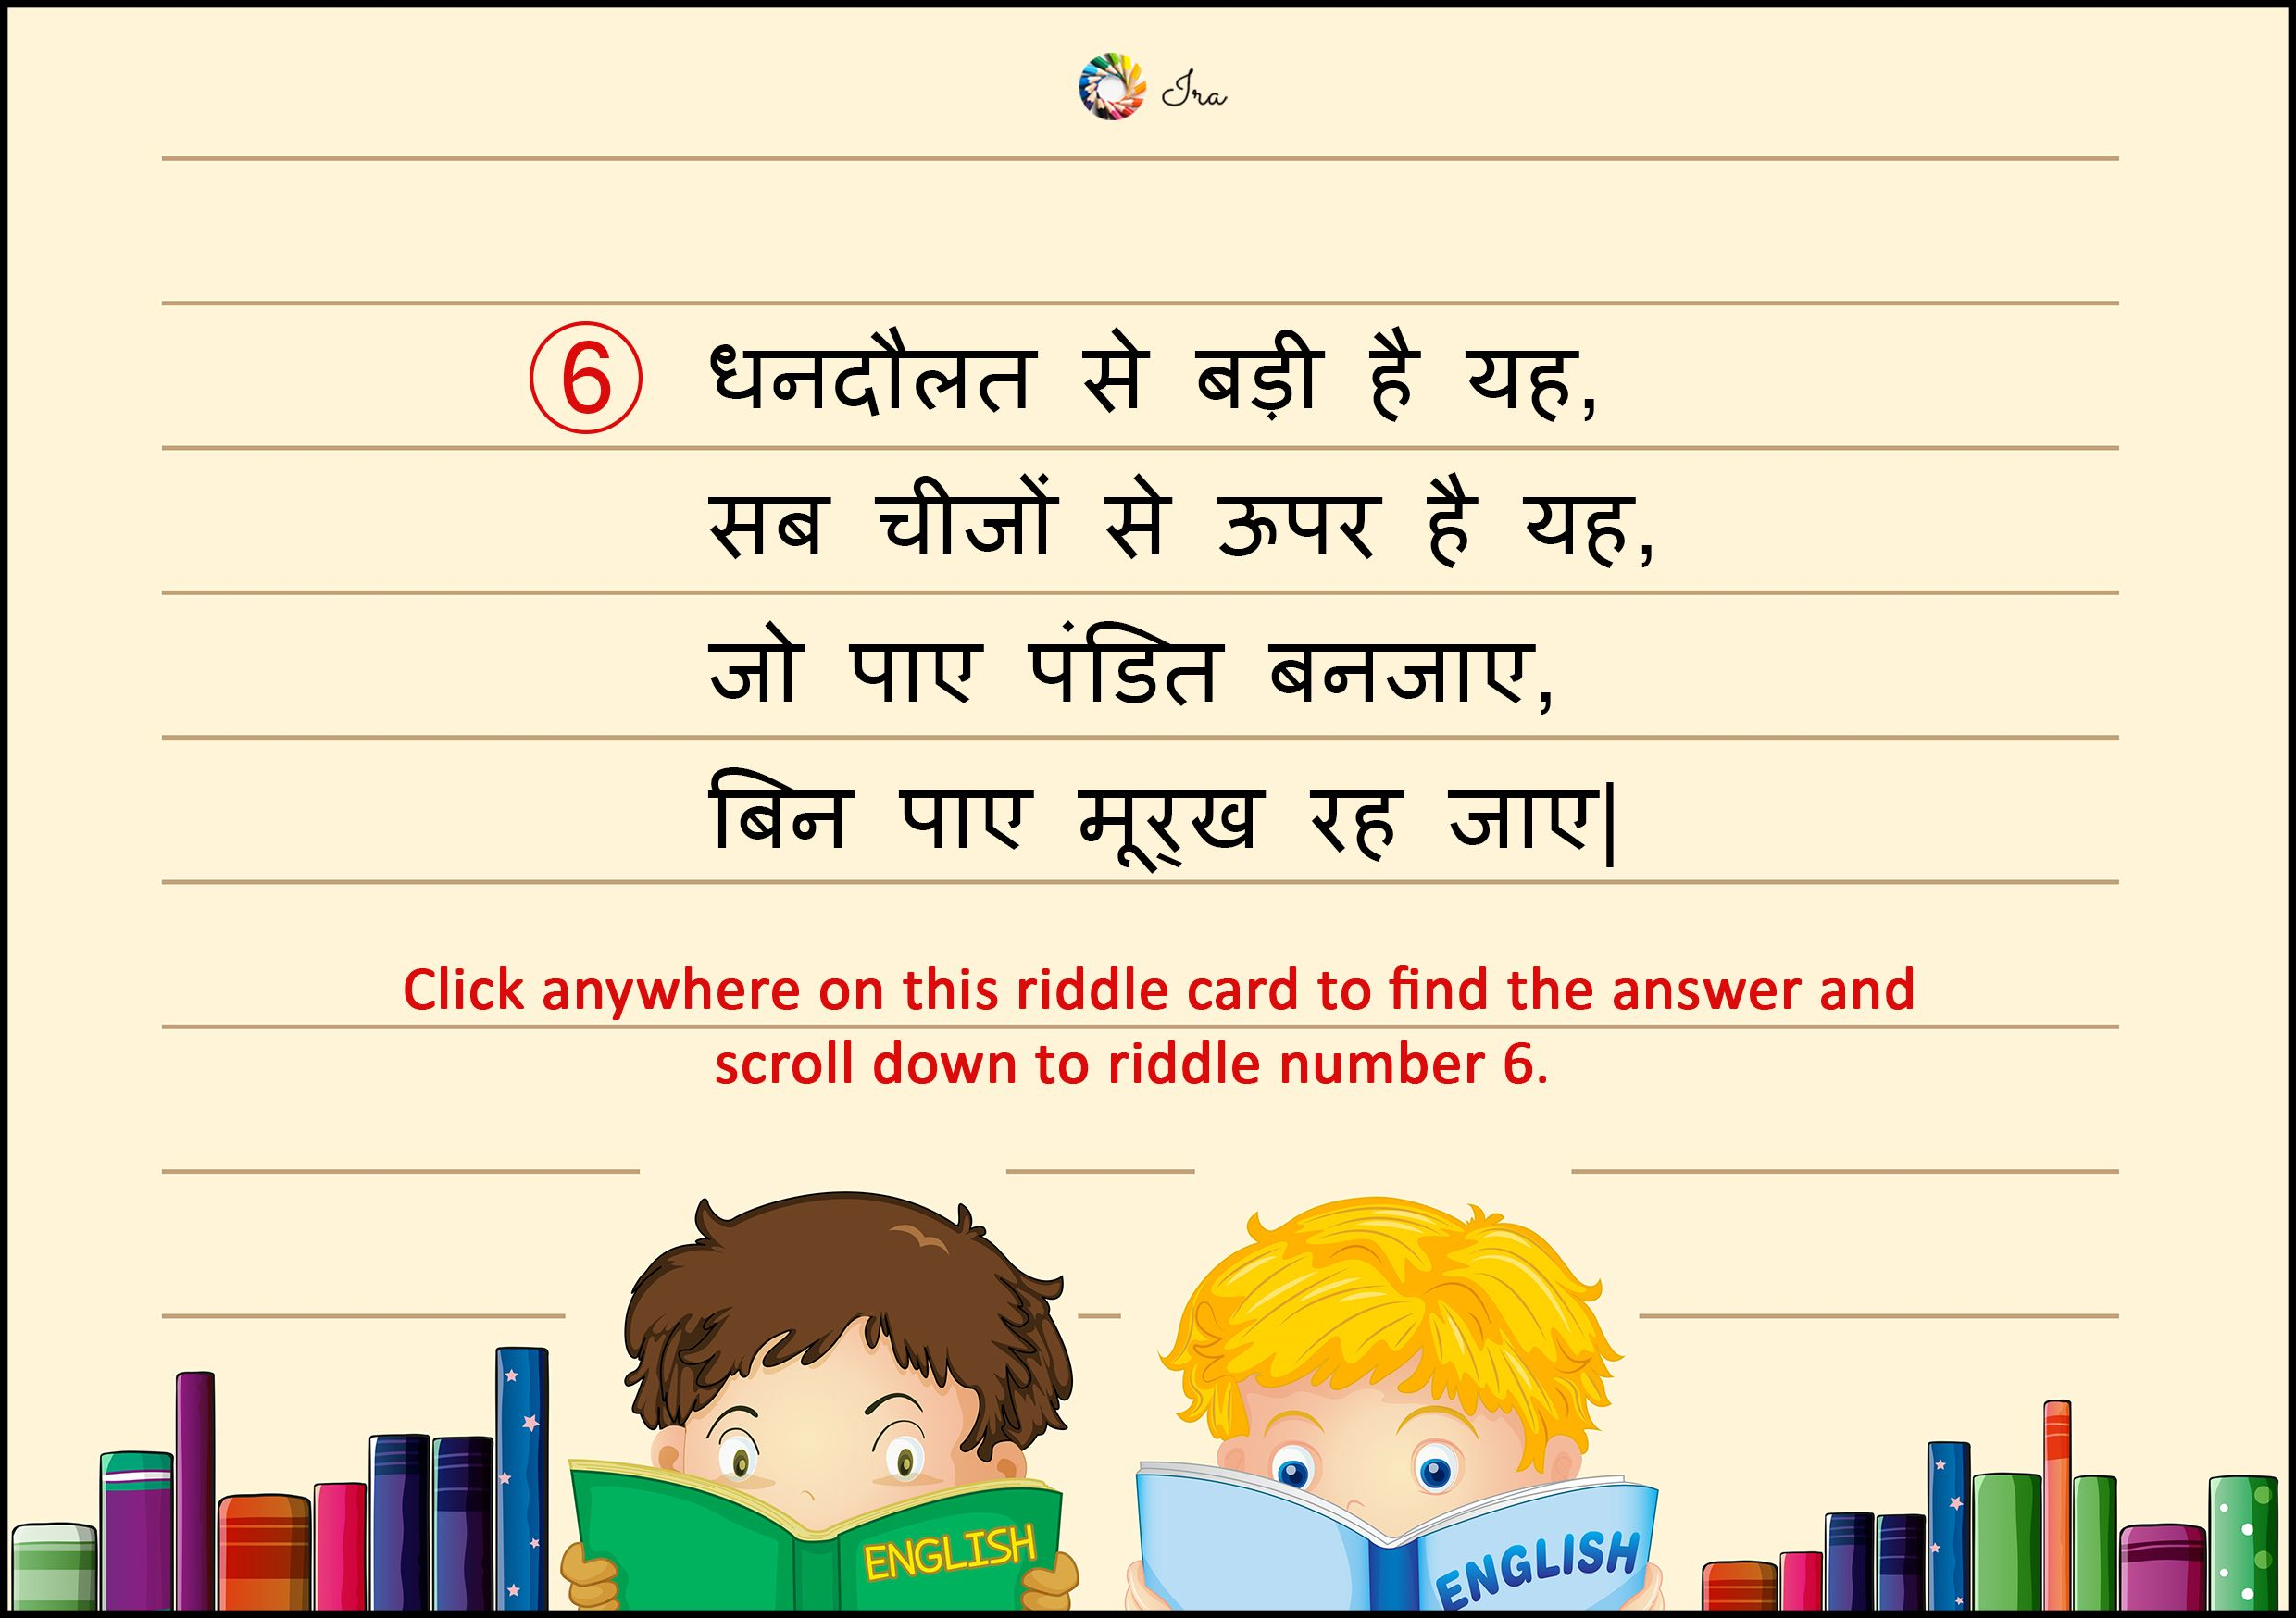 60 Rare Riddles in Hindi with Answers (With images